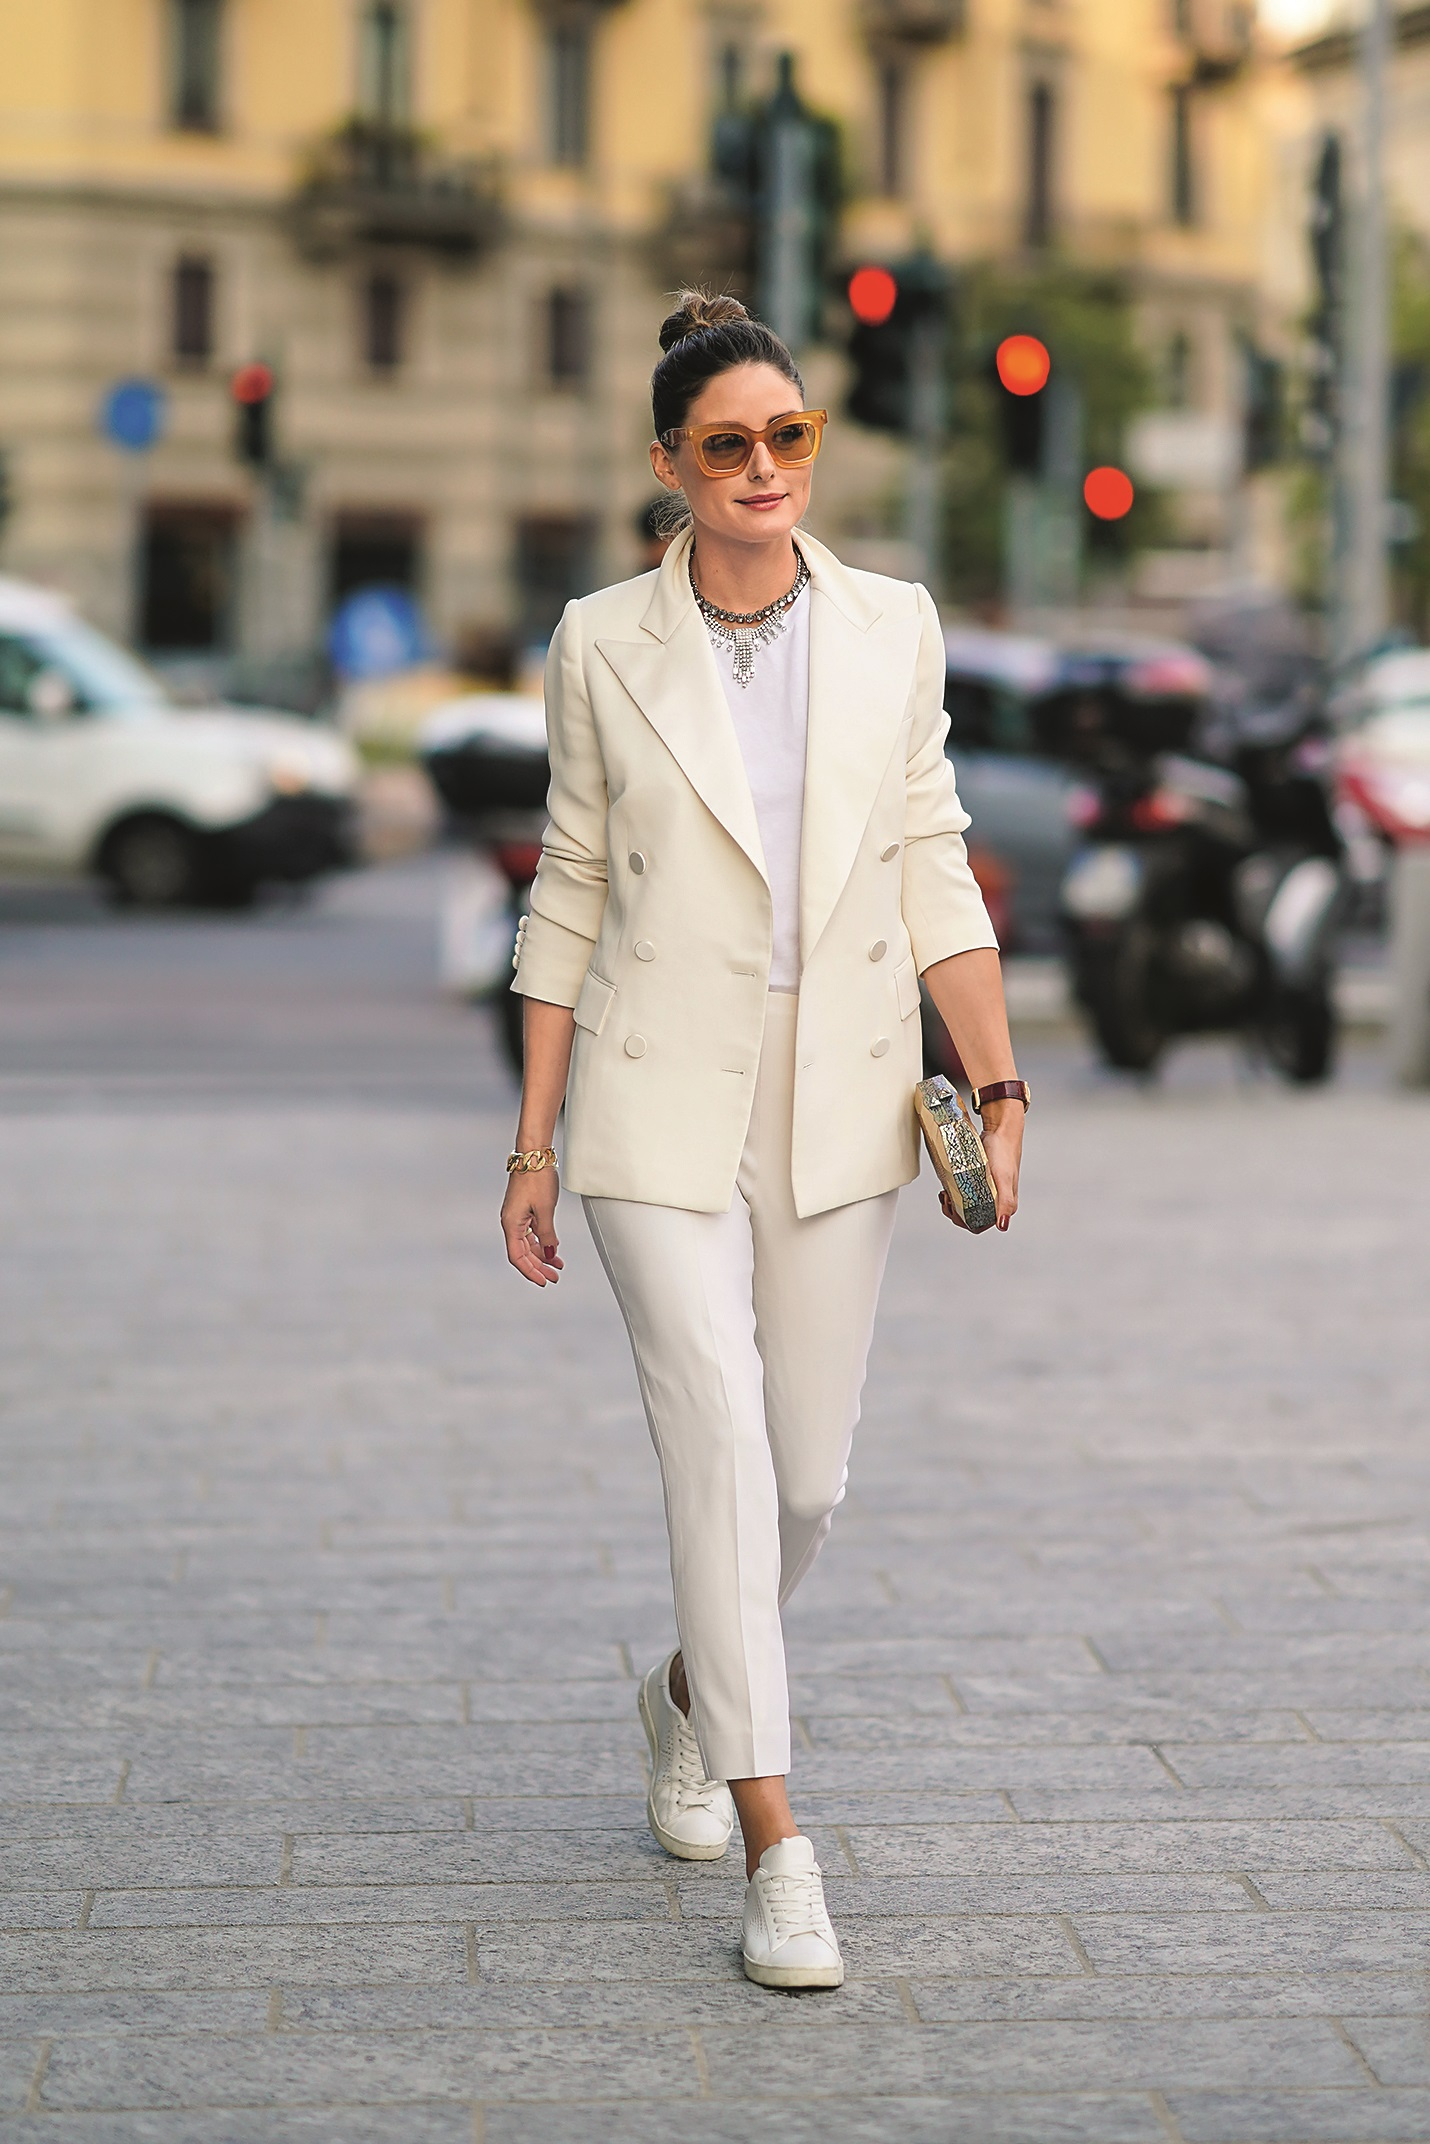 MILAN, ITALY - SEPTEMBER 18: Olivia Palermo wears brown sunglasses, a white blazer jacket, a necklace, a white t-shirt, cropped pants, sneakers, a golden clutch, outside the Alberta Ferretti show during Milan Fashion Week Spring/Summer 2020 on September 18, 2019 in Milan, Italy. (Photo by Edward Berthelot/Getty Images)